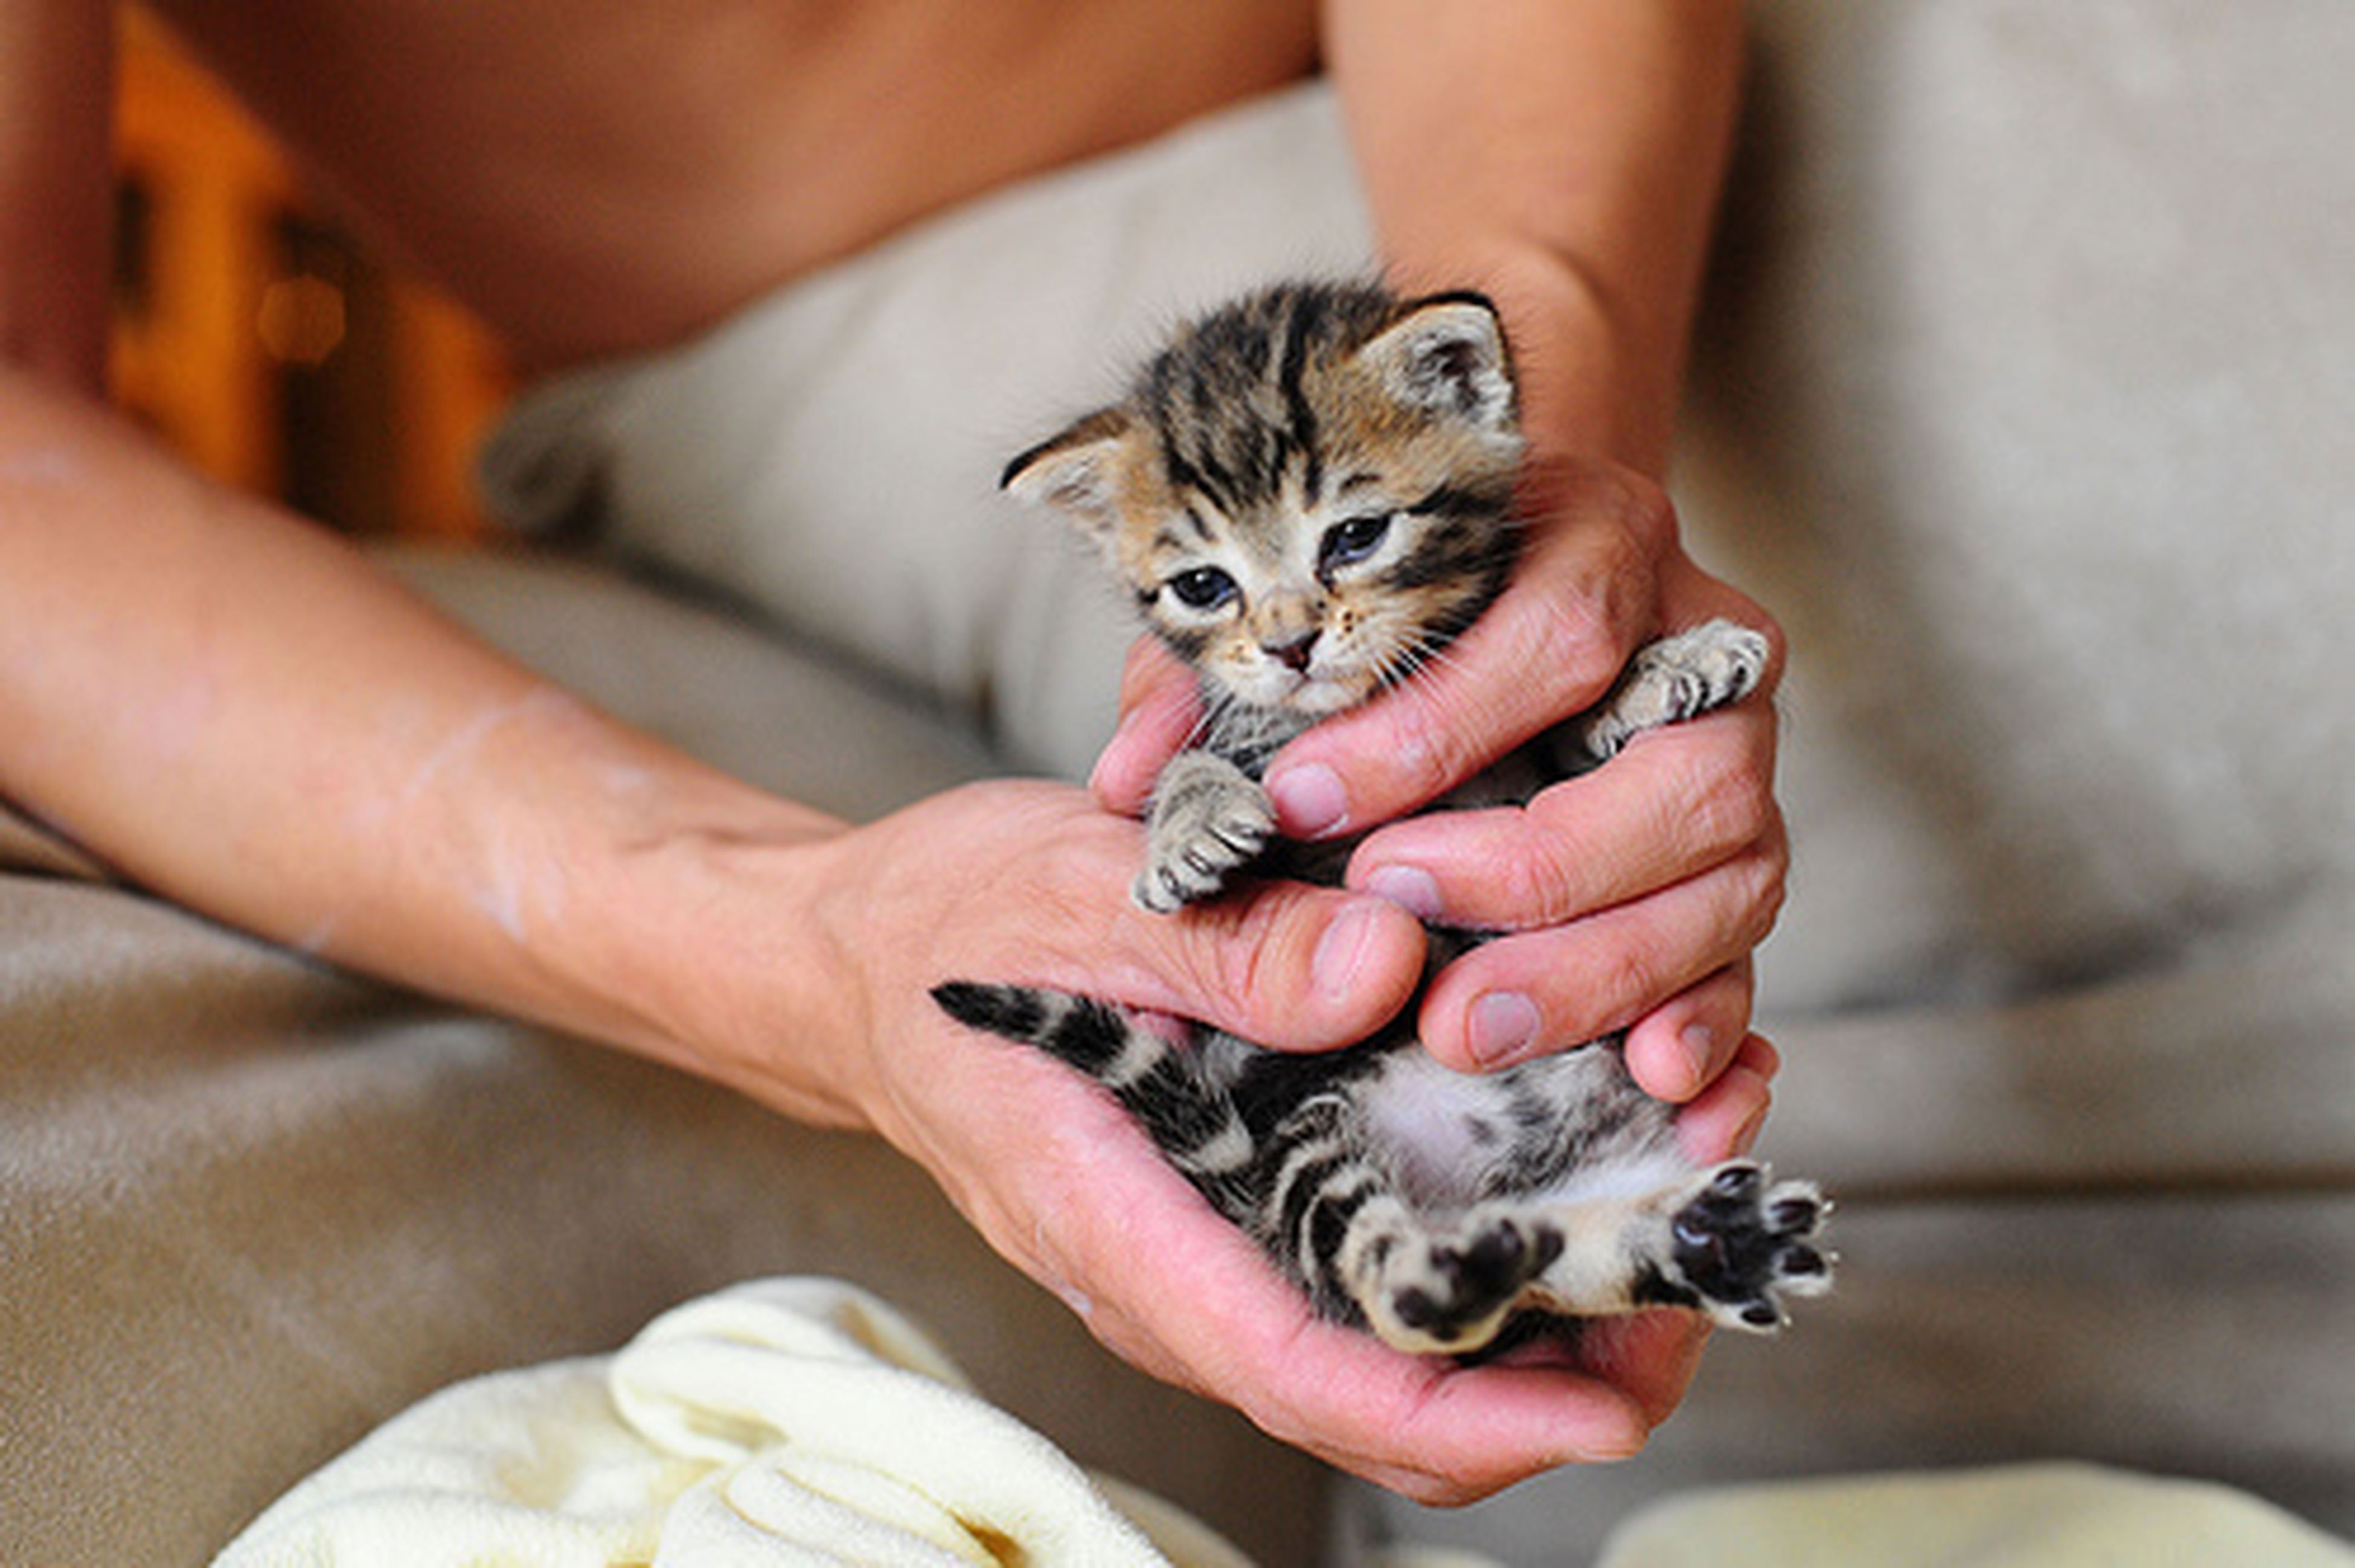 animal themes, pets, person, one animal, domestic animals, mammal, holding, domestic cat, indoors, pet owner, part of, young animal, human finger, cat, unrecognizable person, feline, cropped